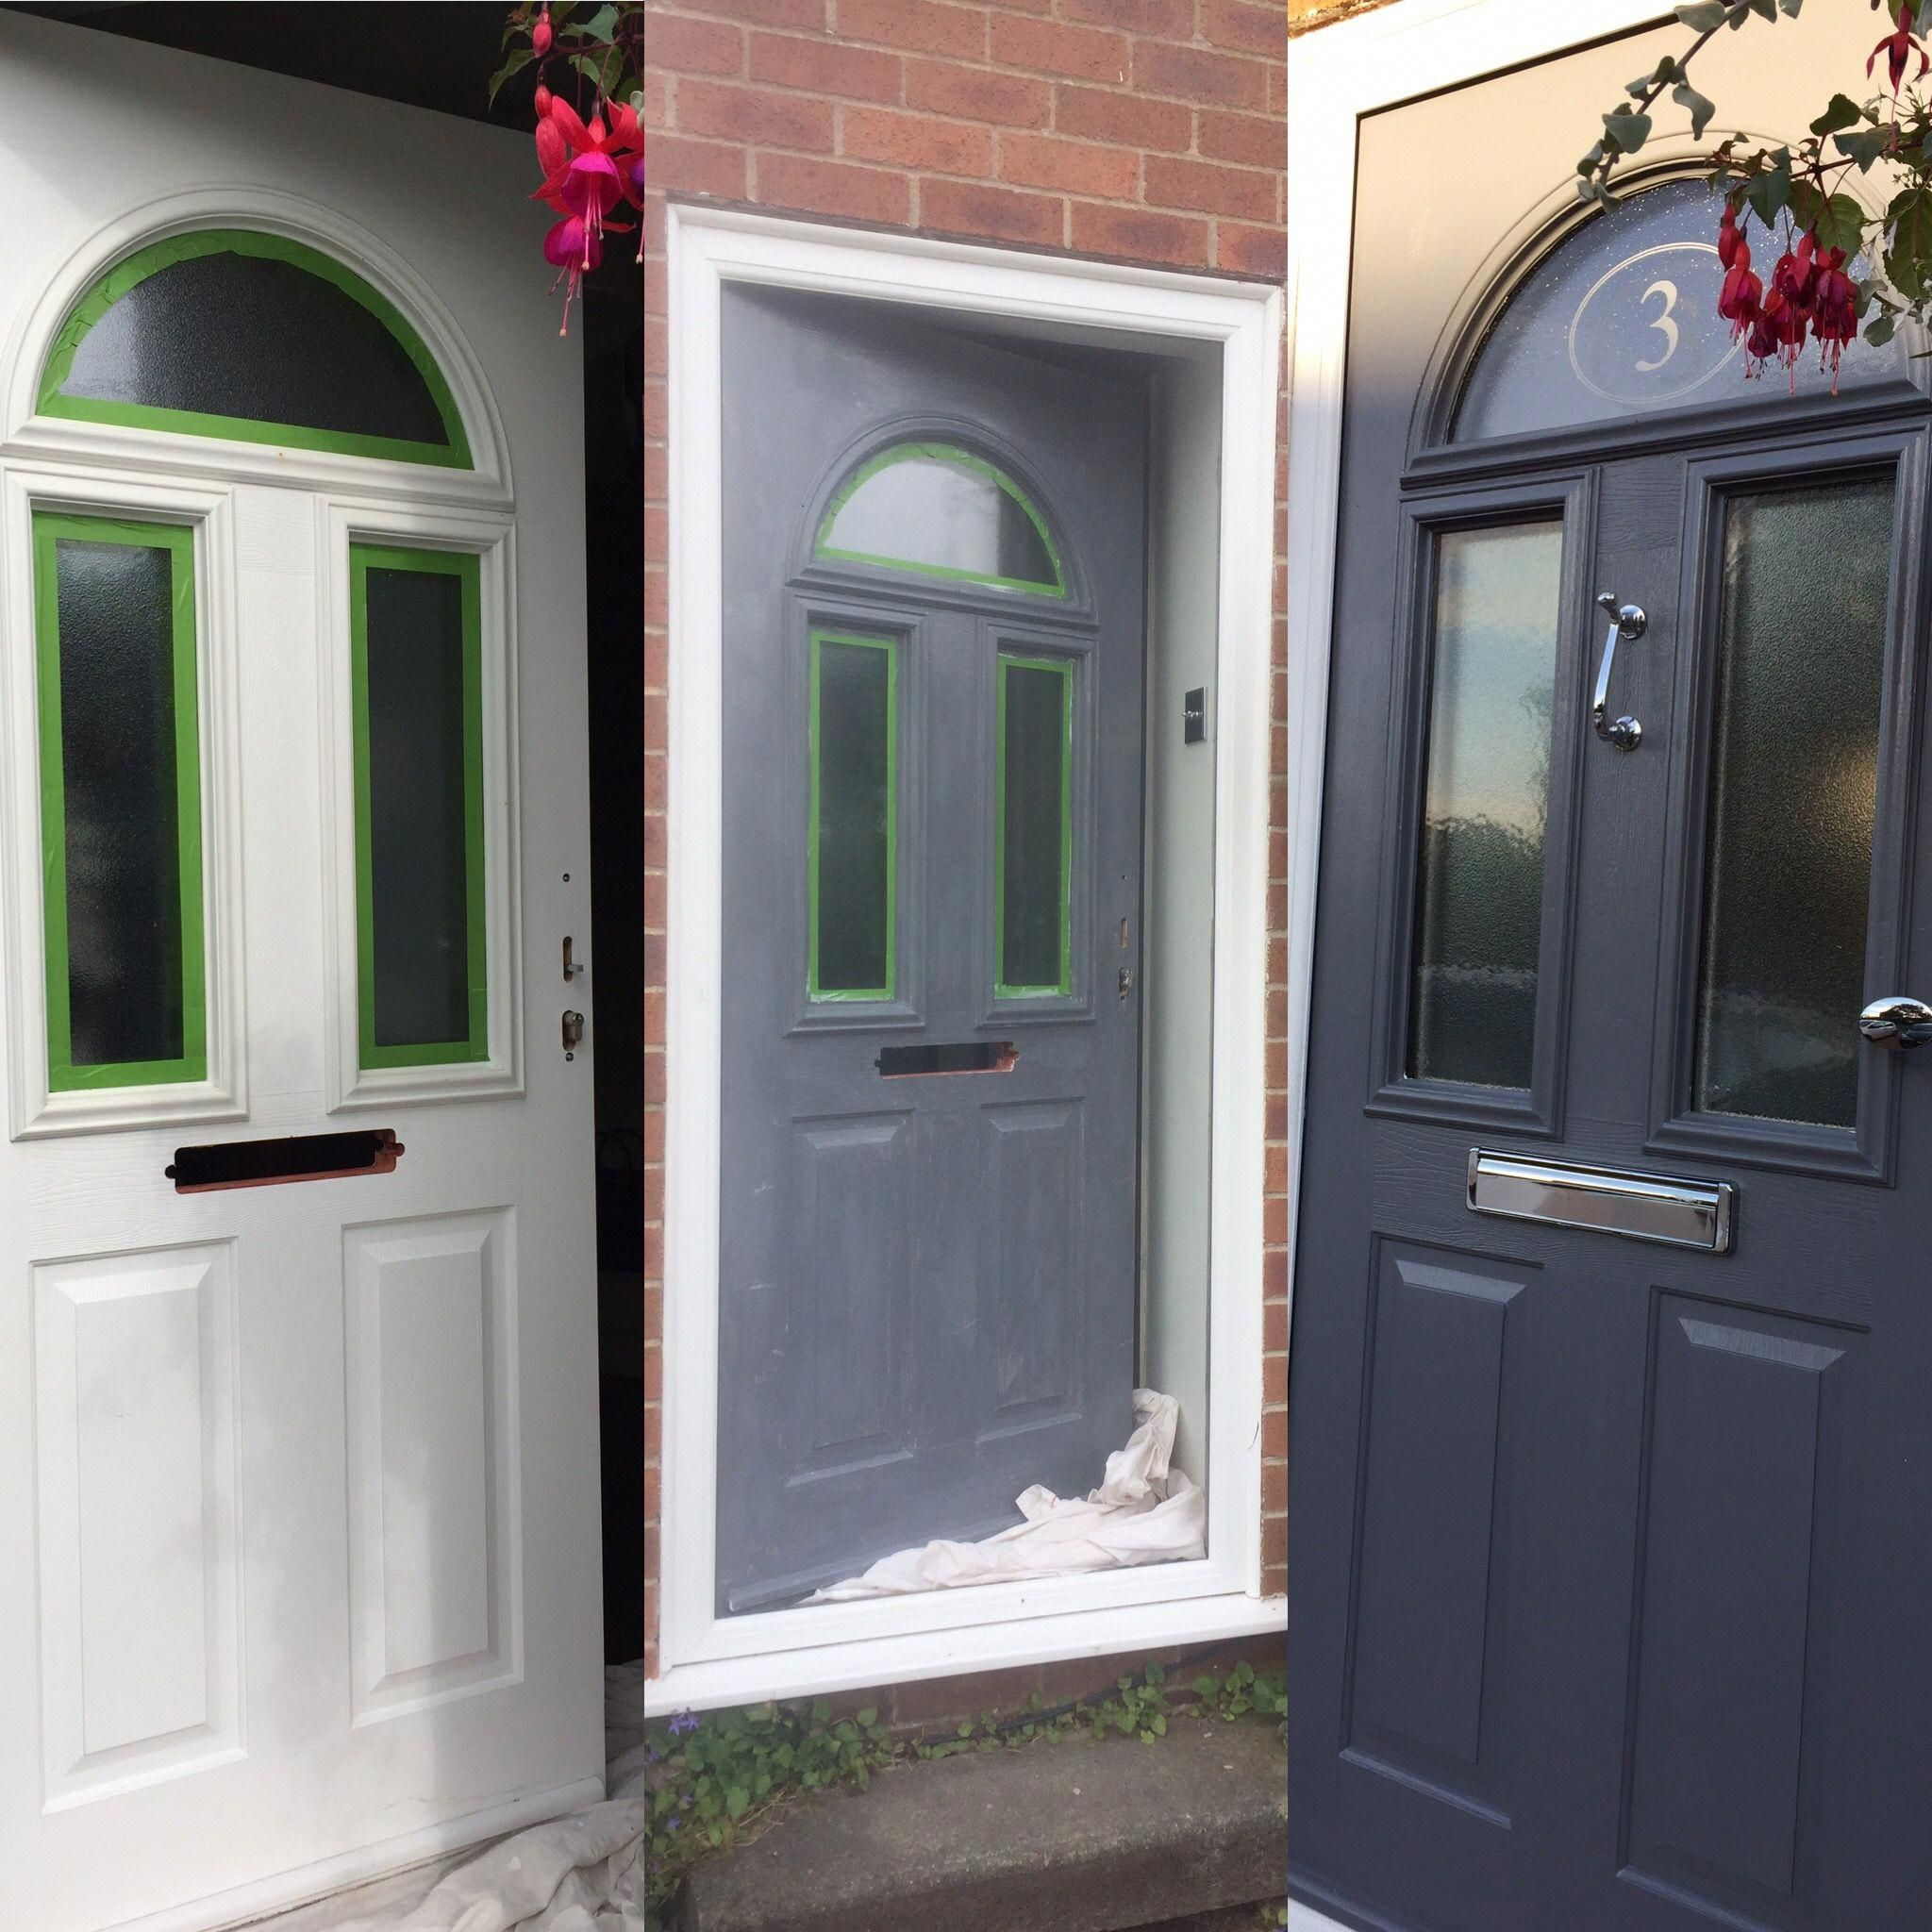 Upvc Painted Front Door 2 Coats Upvc Primer From Sandtex 2 Coats Dulux Exterior Satin Cheap Front D Cheap Front Doors Painted Front Doors Painted Upvc Door